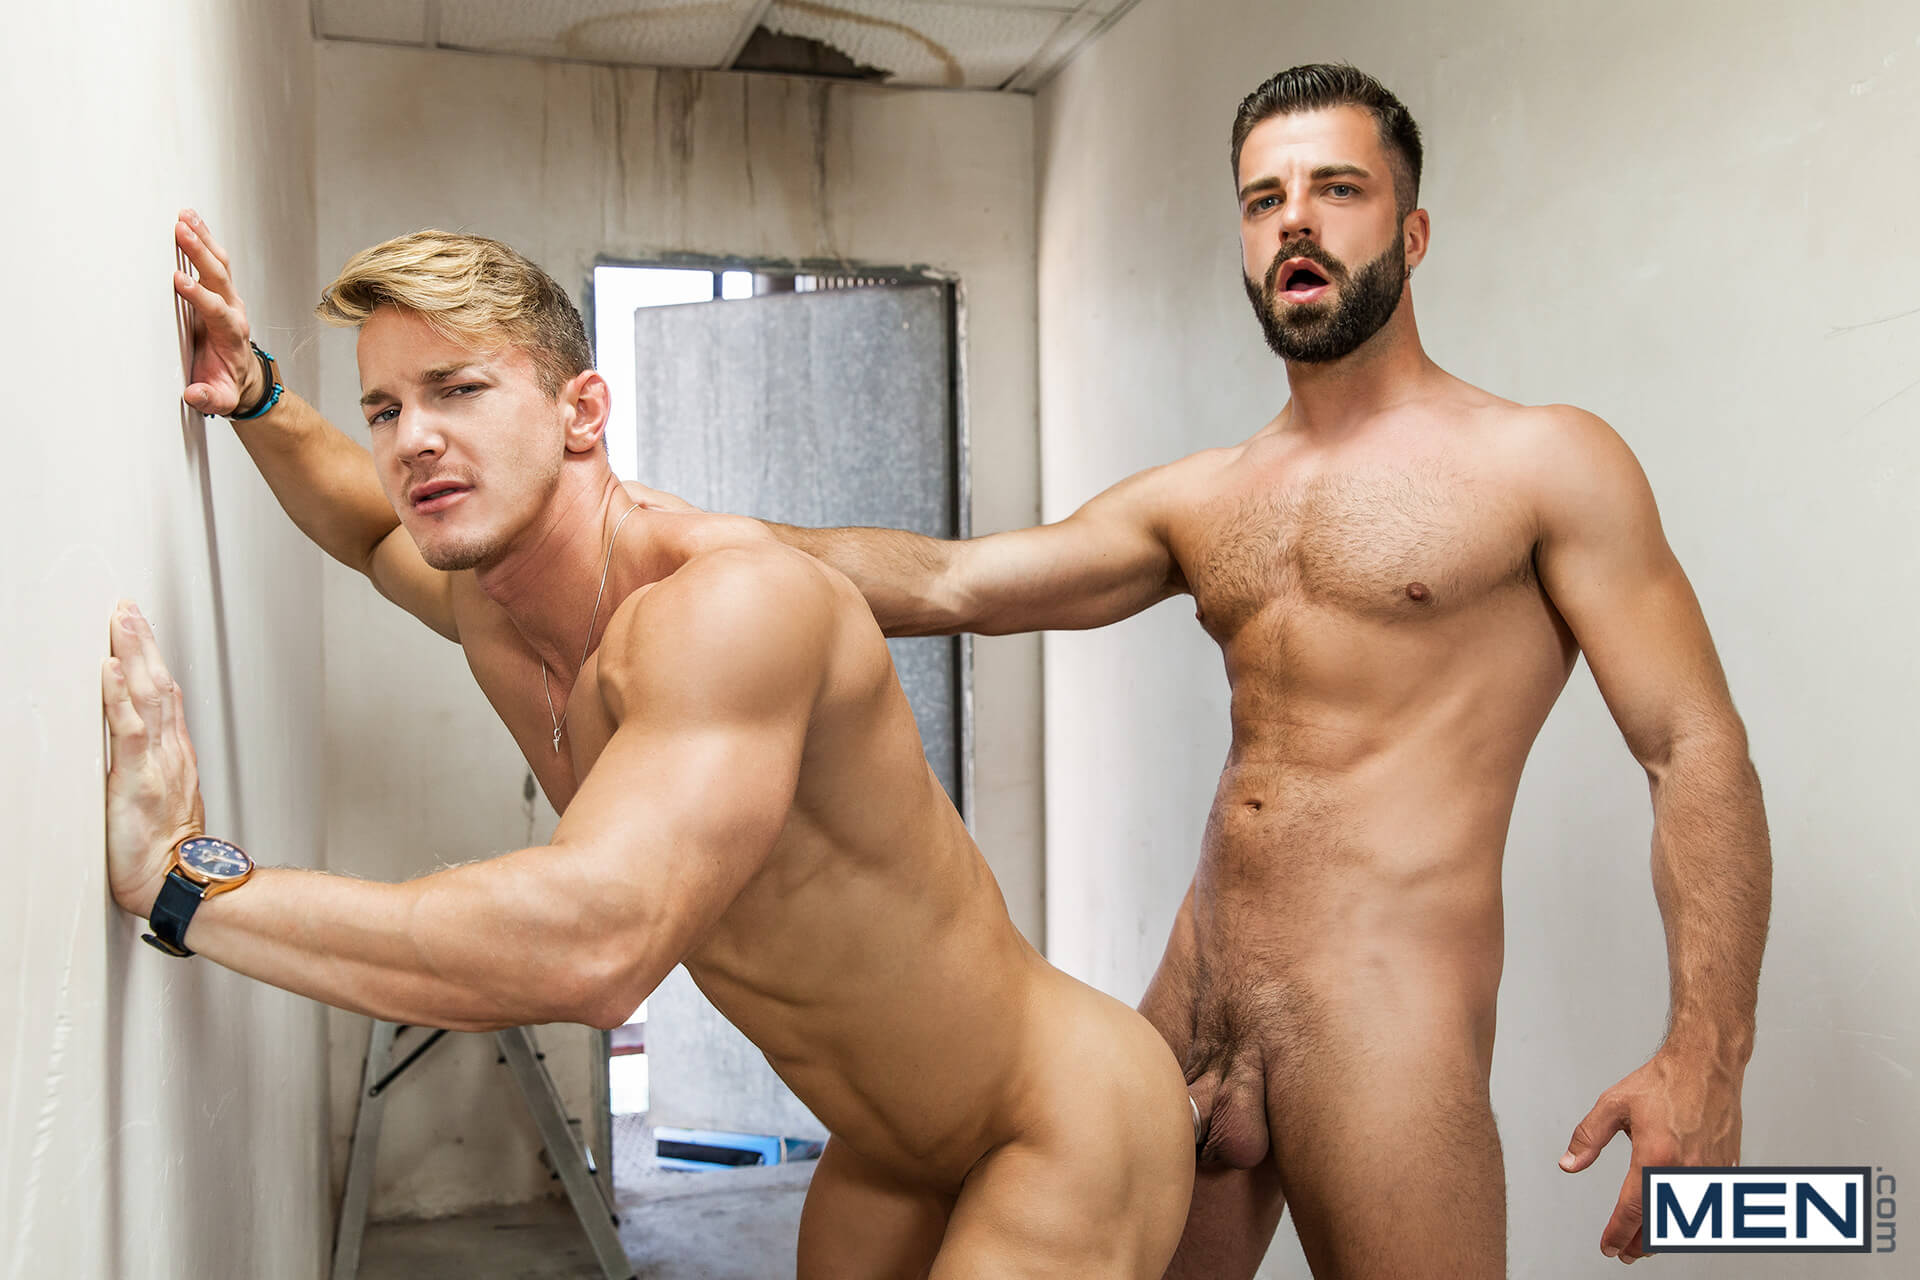 men drill my hole the weekend away part 2 darius ferdynand hector de silva gay porn blog image 17